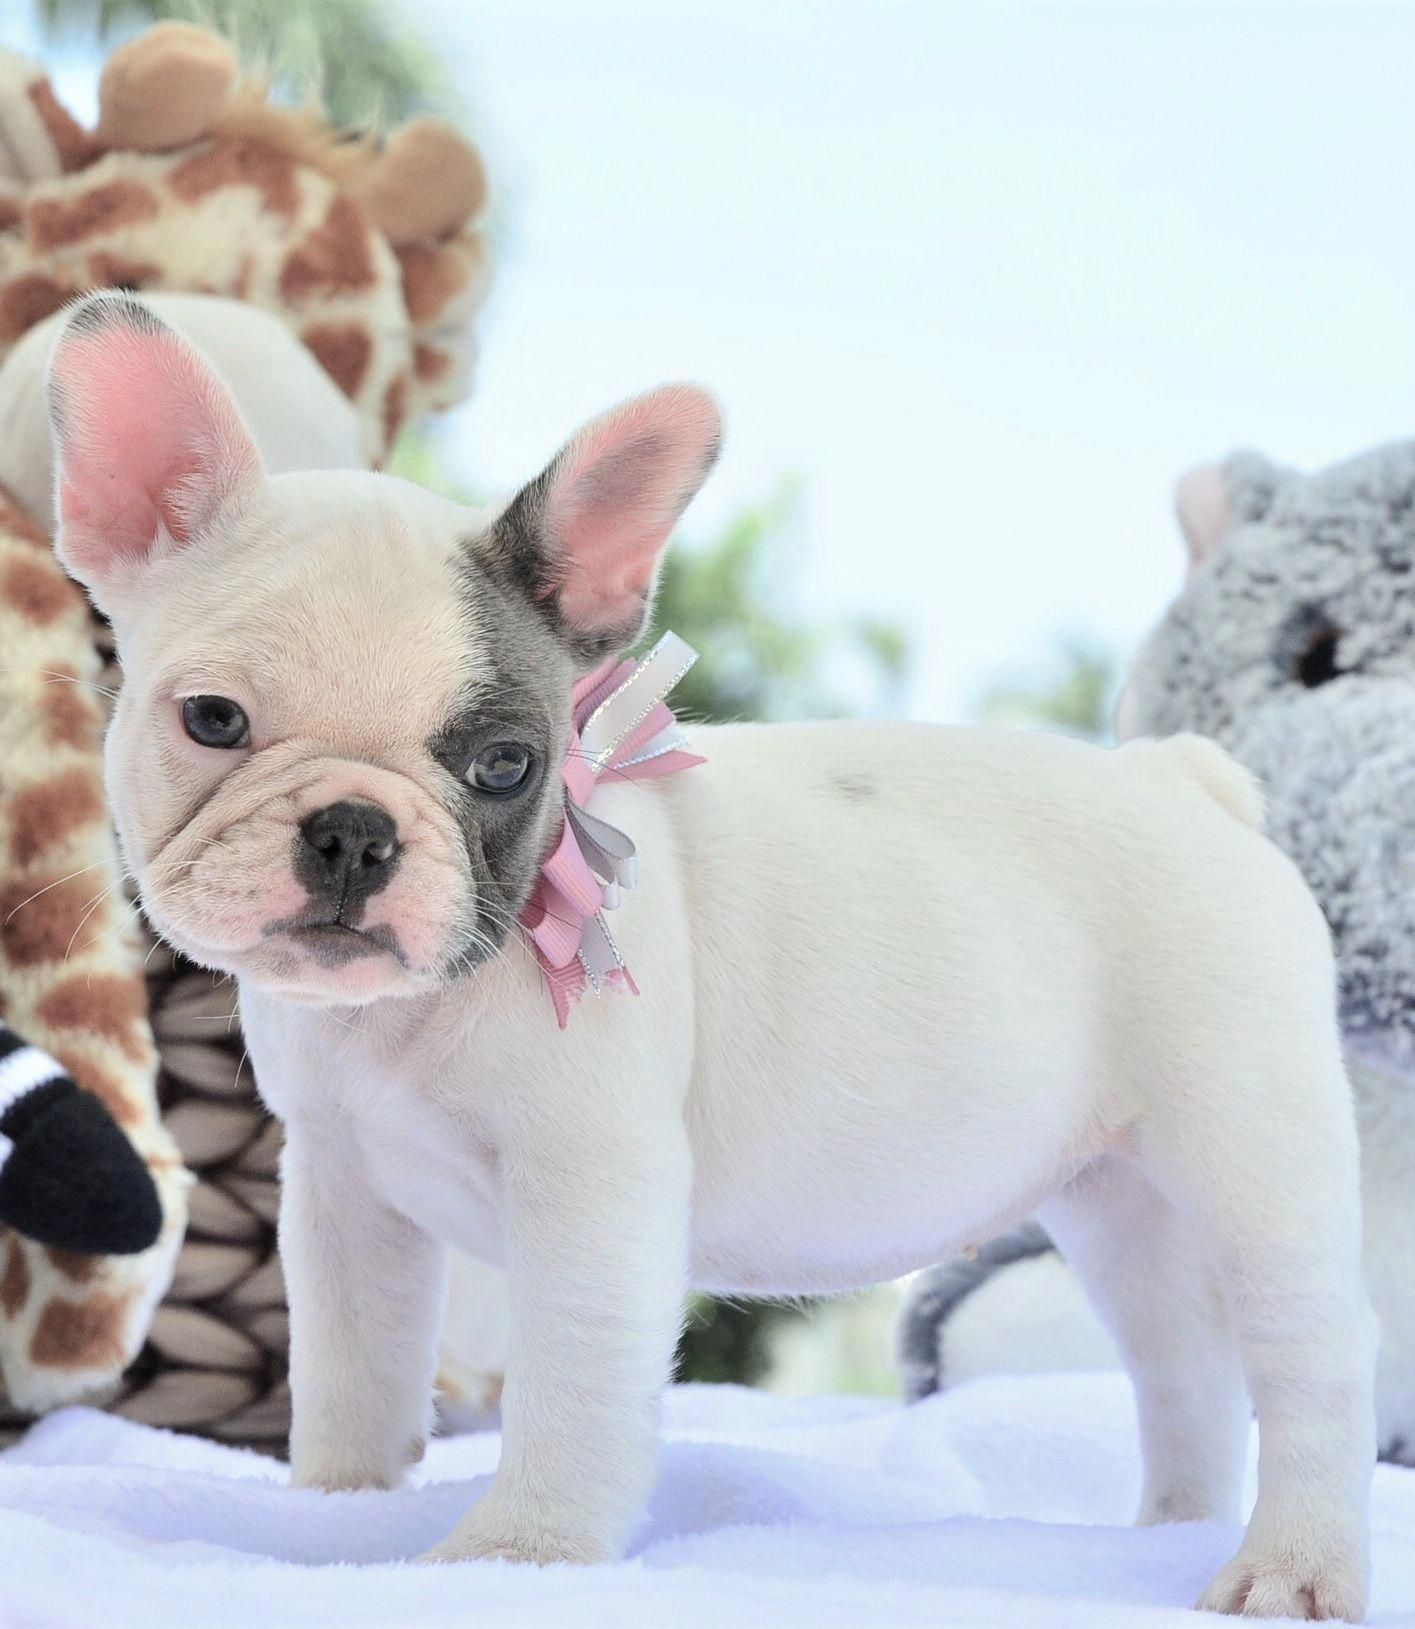 Discover The Bright French Bulldog Pups Personality Frenchbulldogstagram Frenchbulldogs0fig Frenchbulldog French Bulldog Puppies Bulldog Puppies Pug Puppies